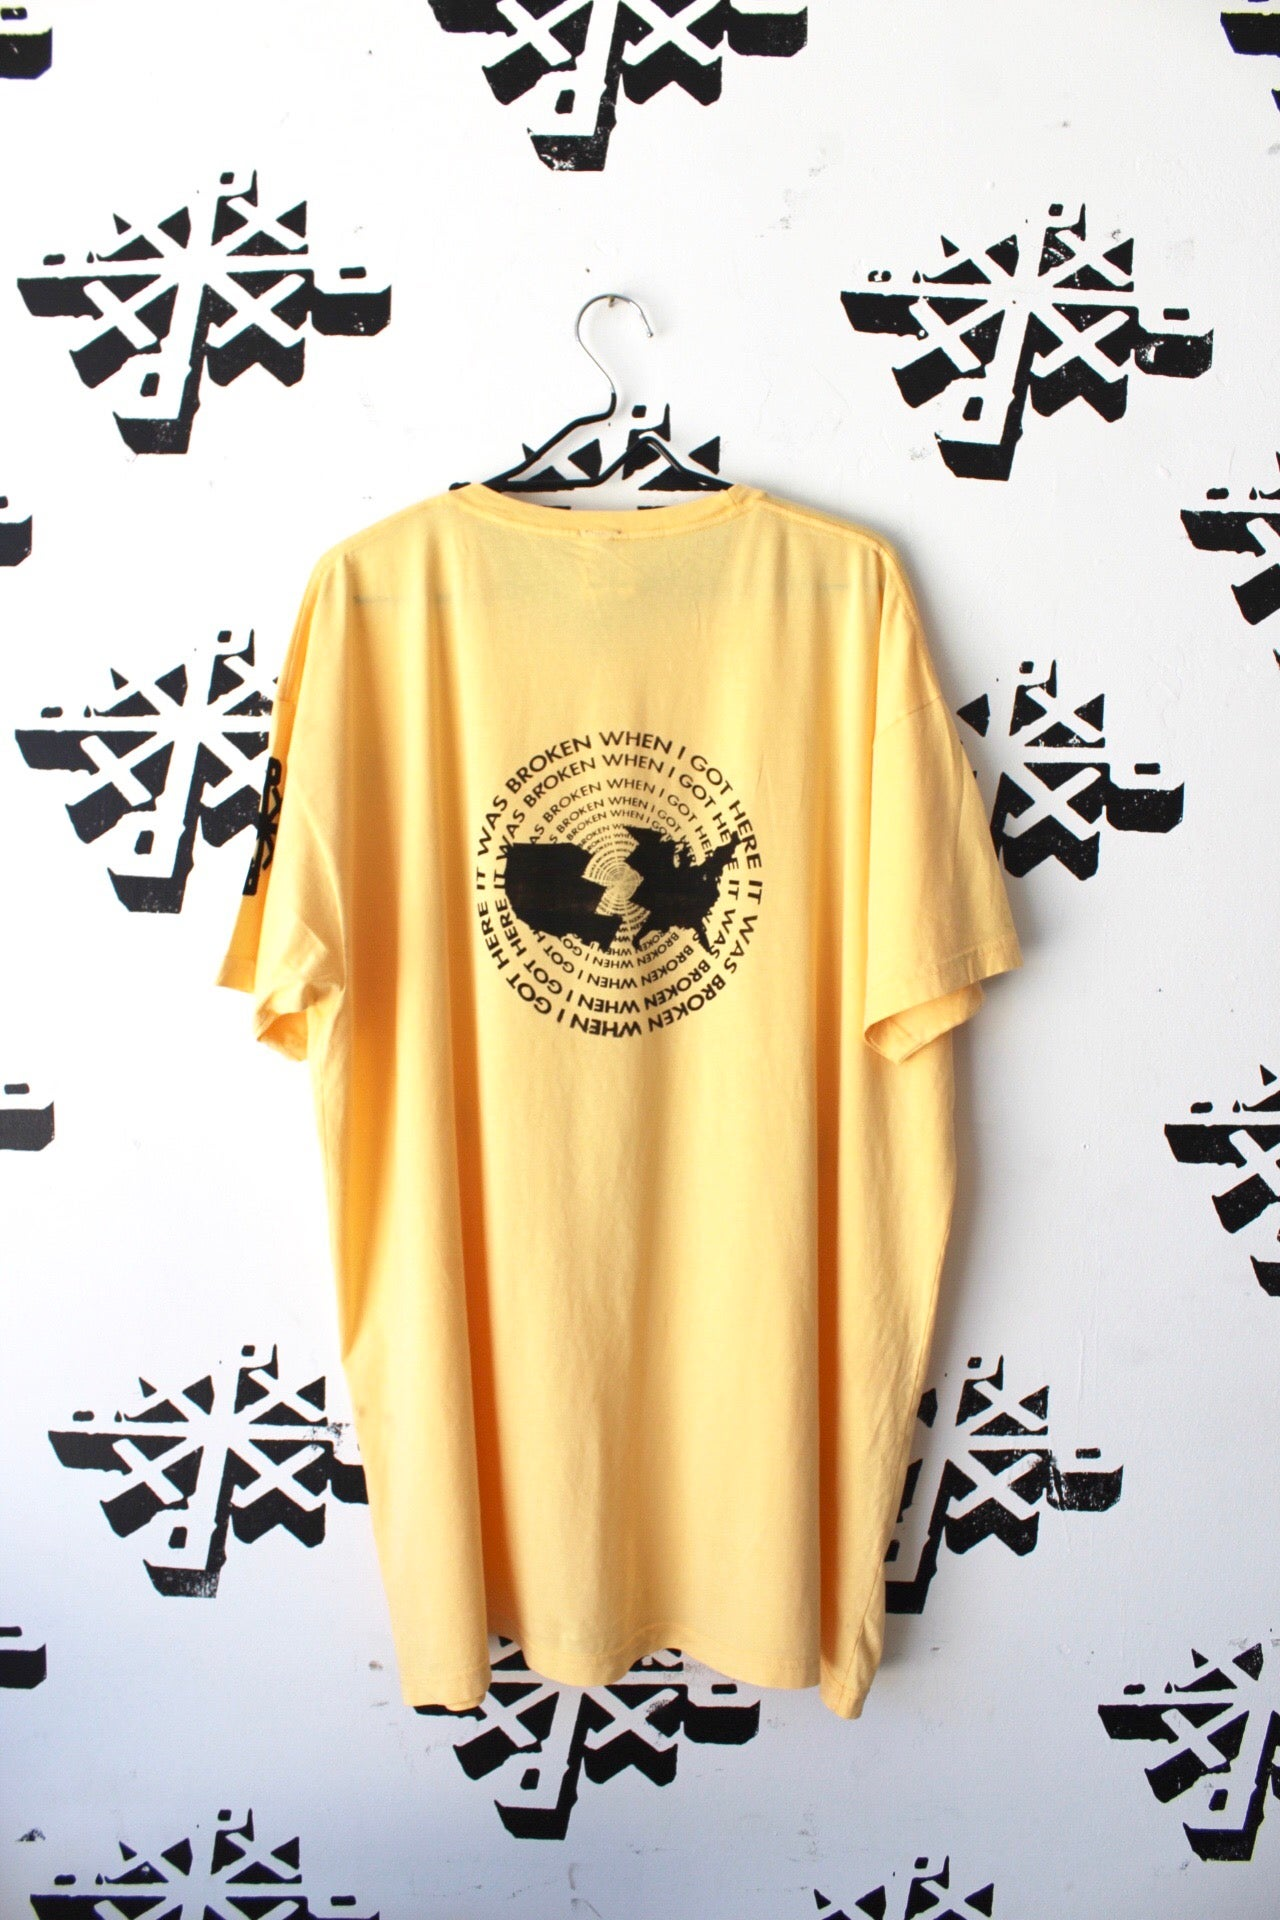 Image of broken when i got here tee in bright yellow